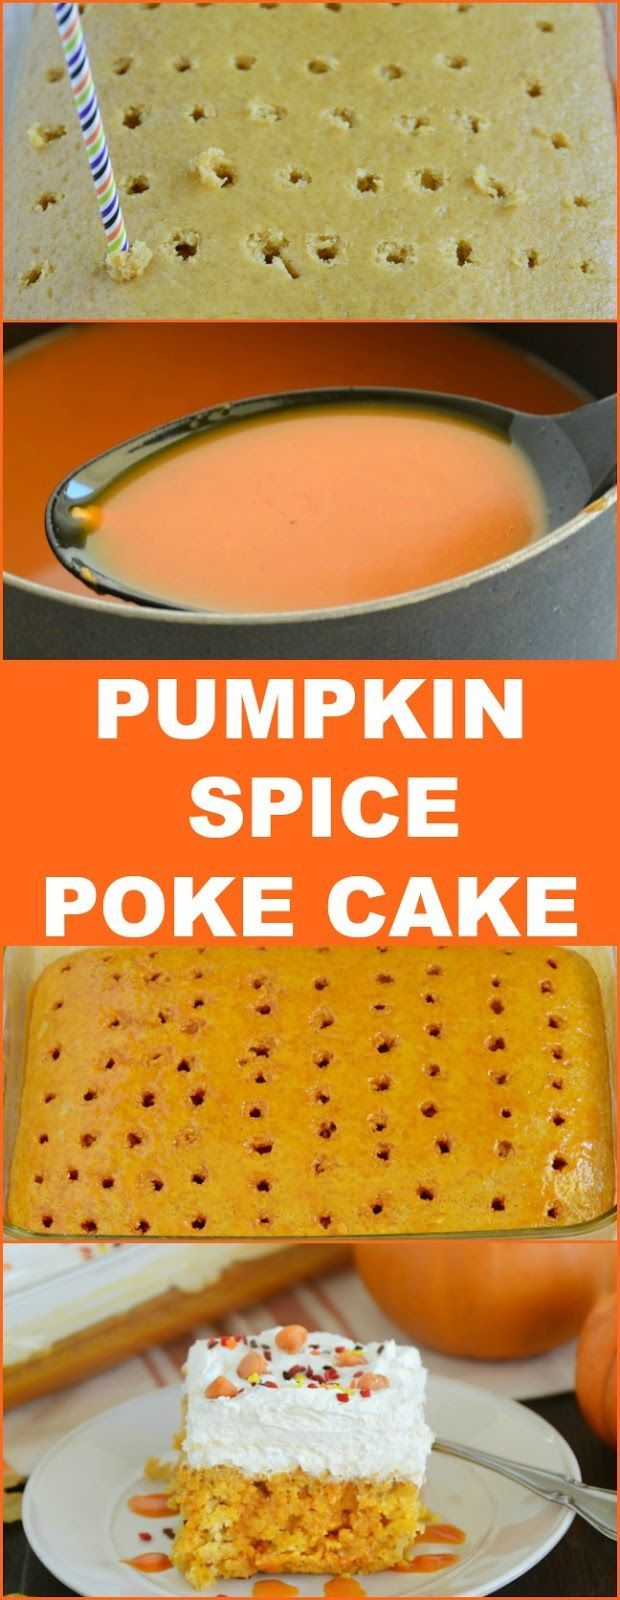 Pumpkin Spice Poke Cake  This easy recipe for homemade pumpkin cake filled with pumpkin spice syrup is the perfect Thanksgiving dessert! AD #NestleHolidayBaking /verybestbaking/